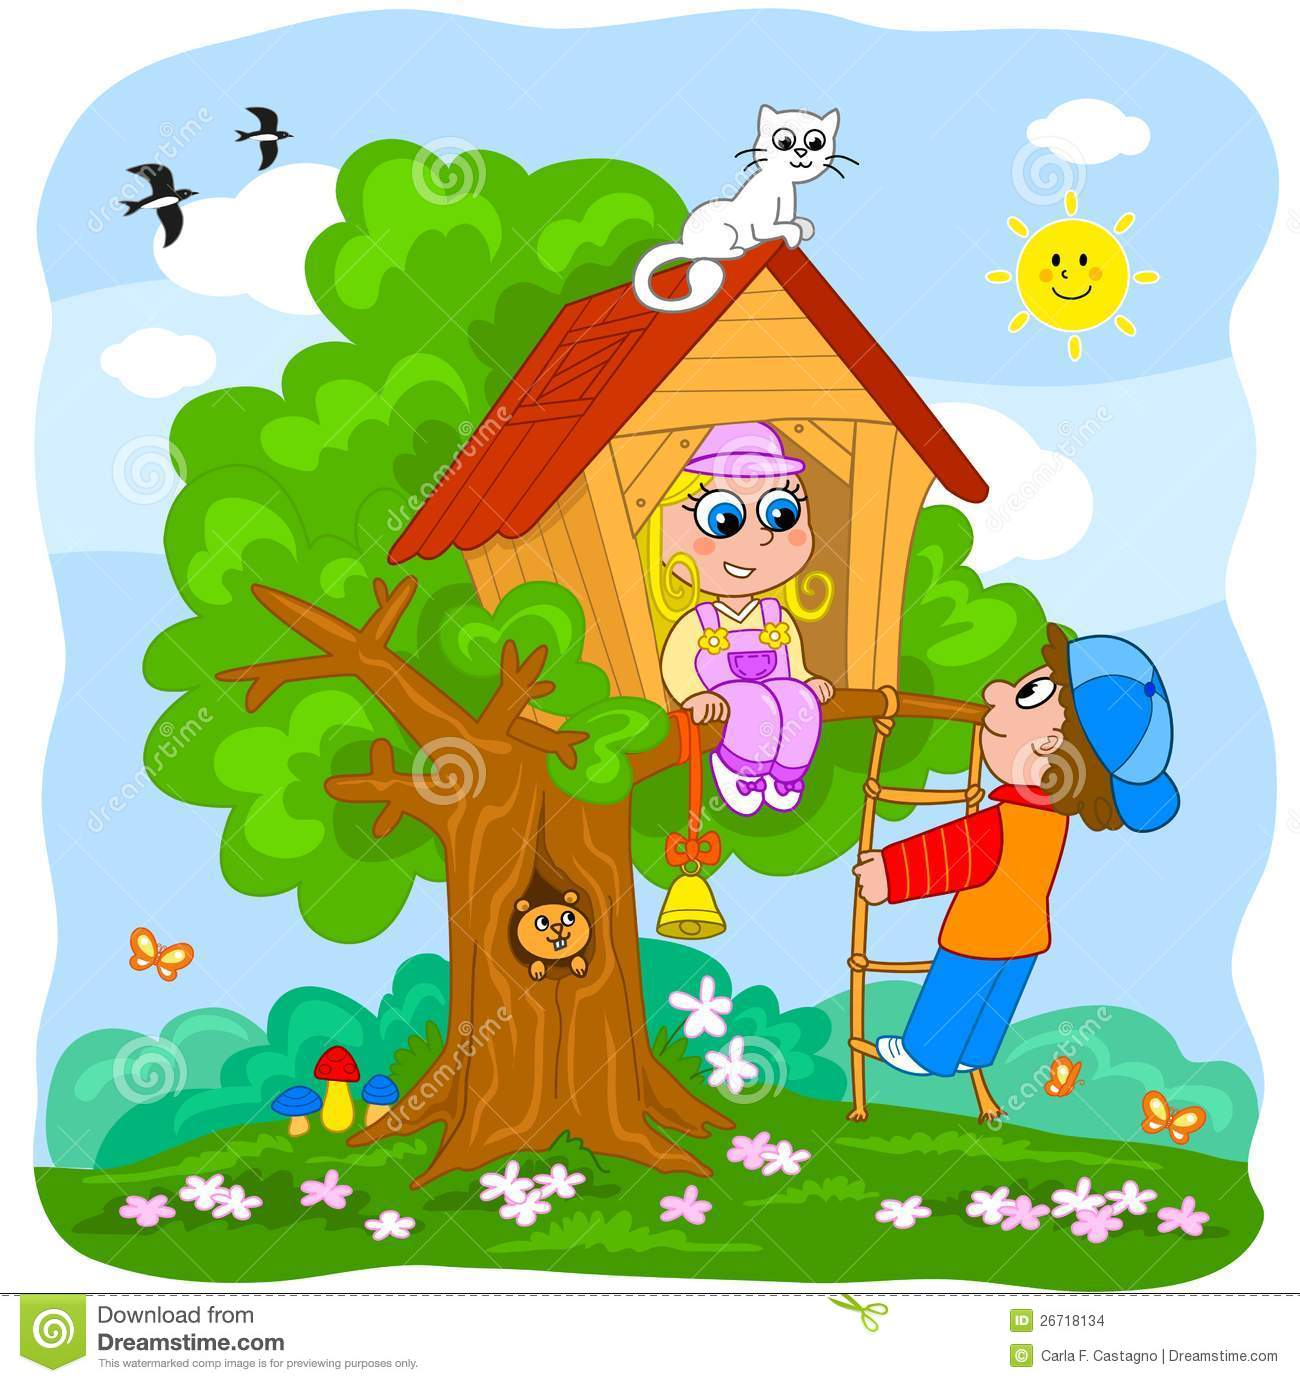 Children playing in a tree house stock vector image for House pics for kids